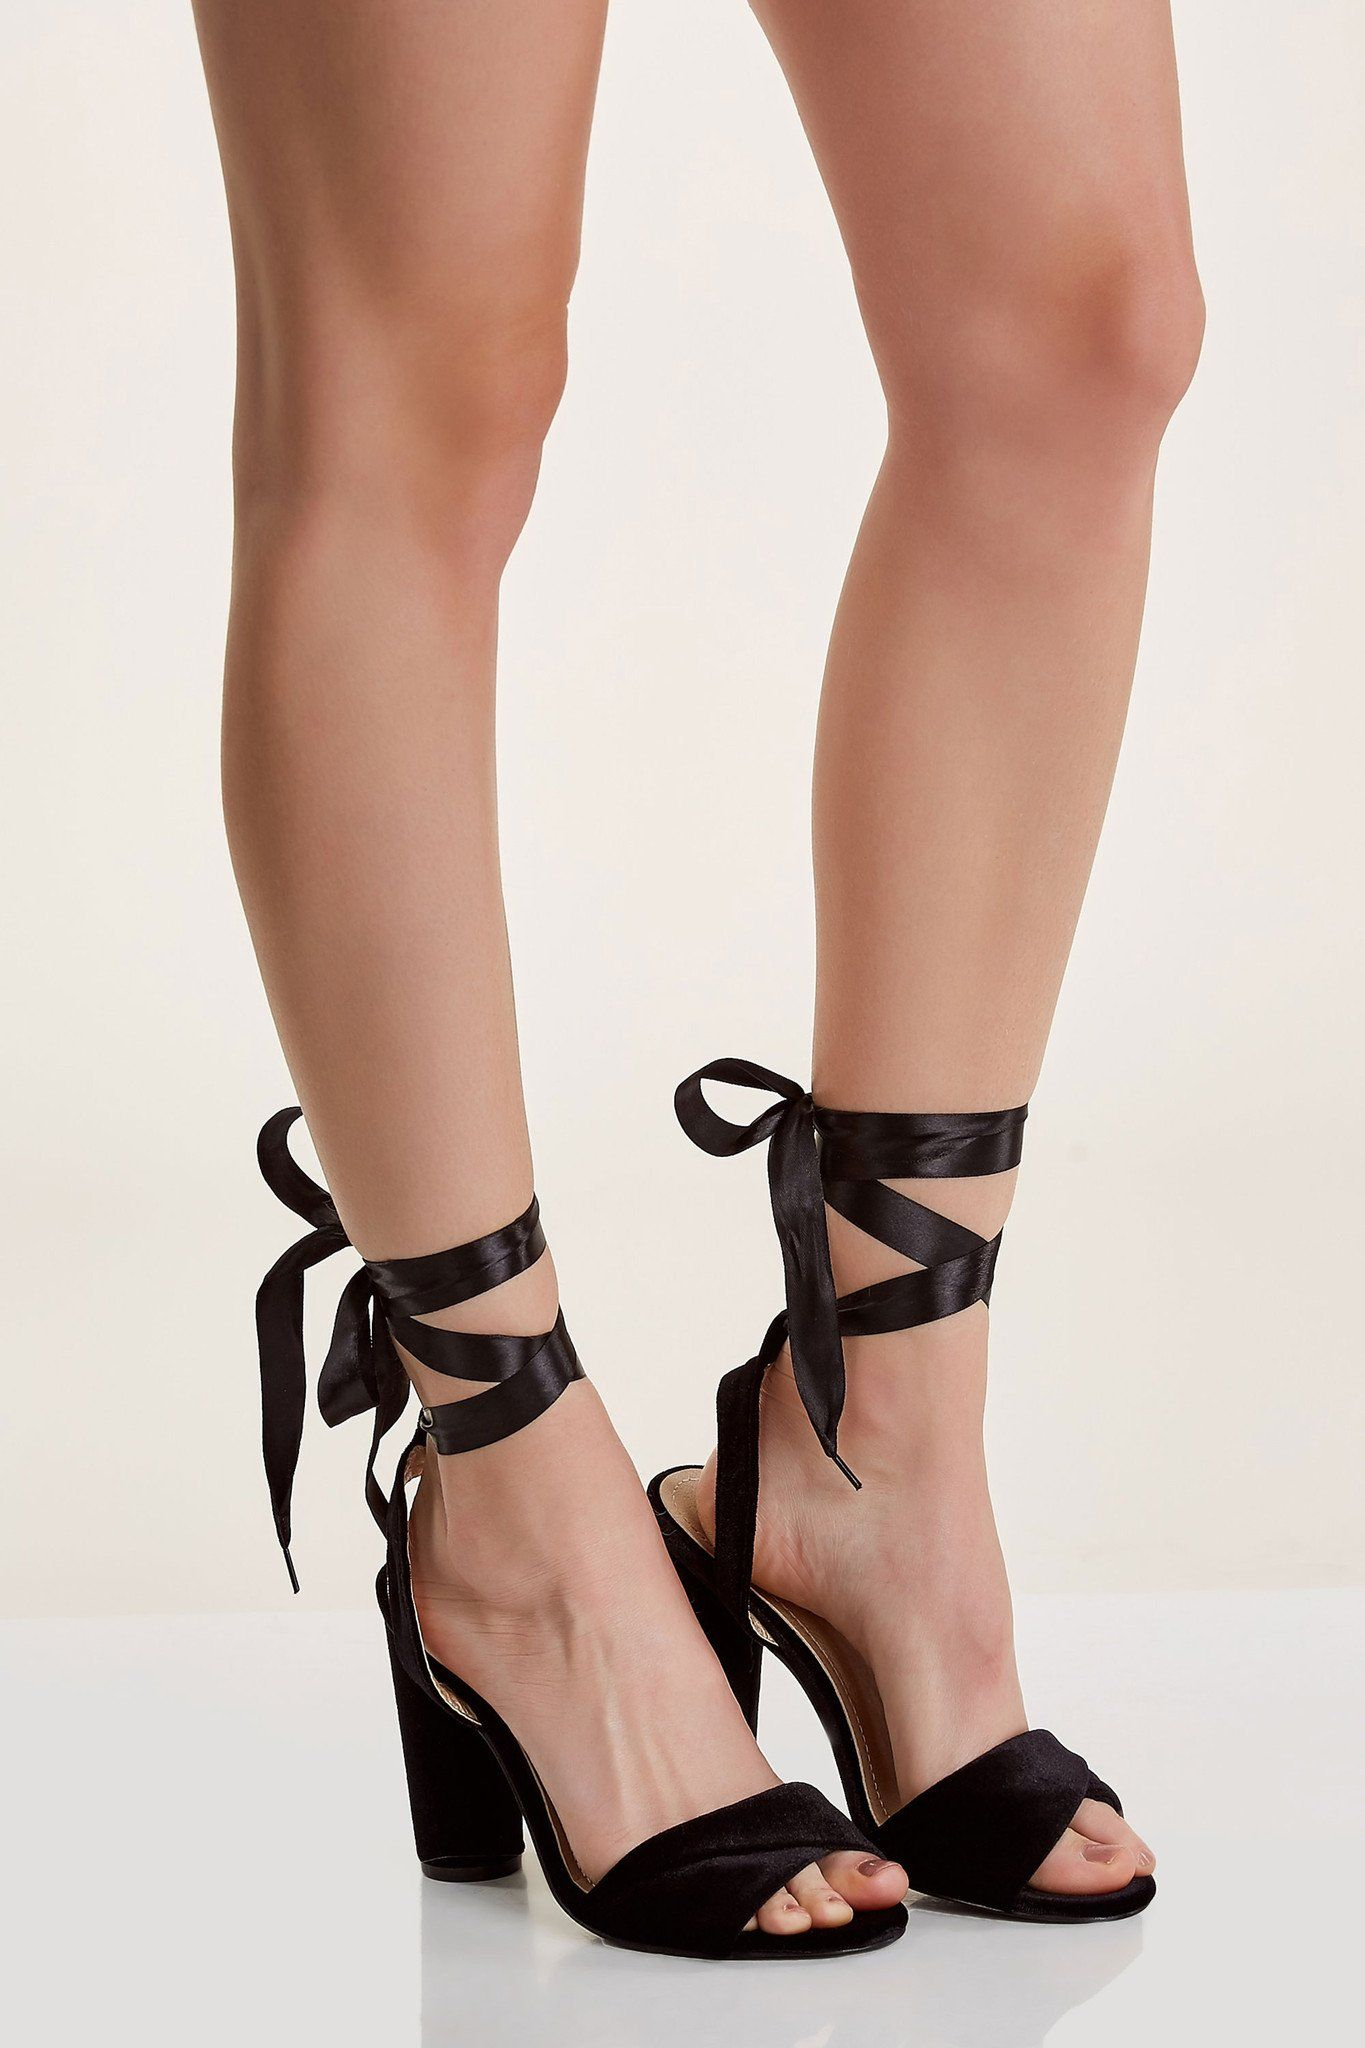 1ee773442a4e28 Flirty open toe block heels with chic velour finish. Contrast lace up  ribbon ties at ankle for added detail.